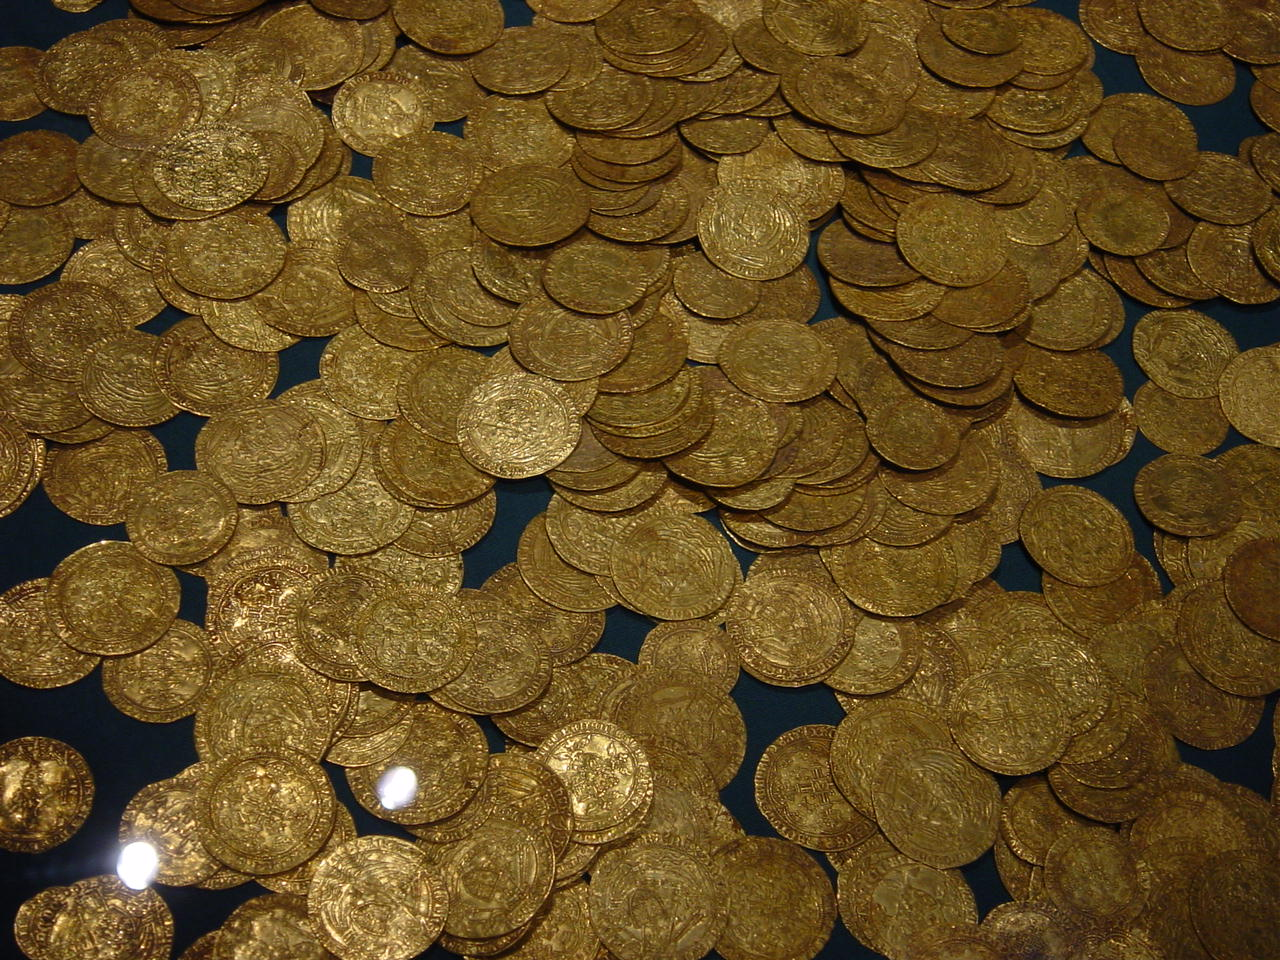 hoard_of_ancient_gold_coins.jpg